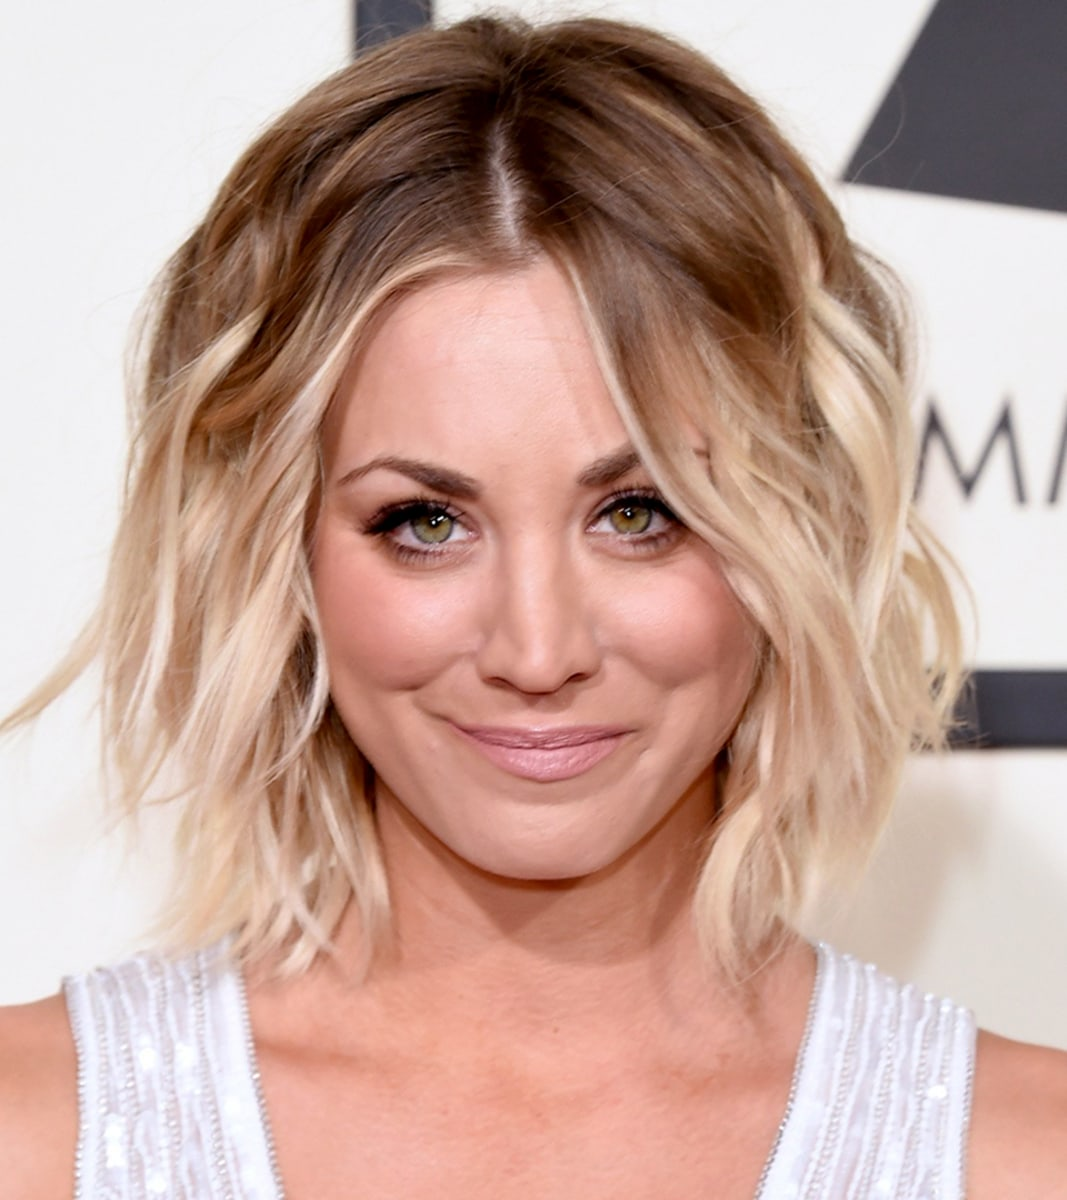 Short Hairstyles For 2016 Celebrity Inspired Modern Haircuts -> Source